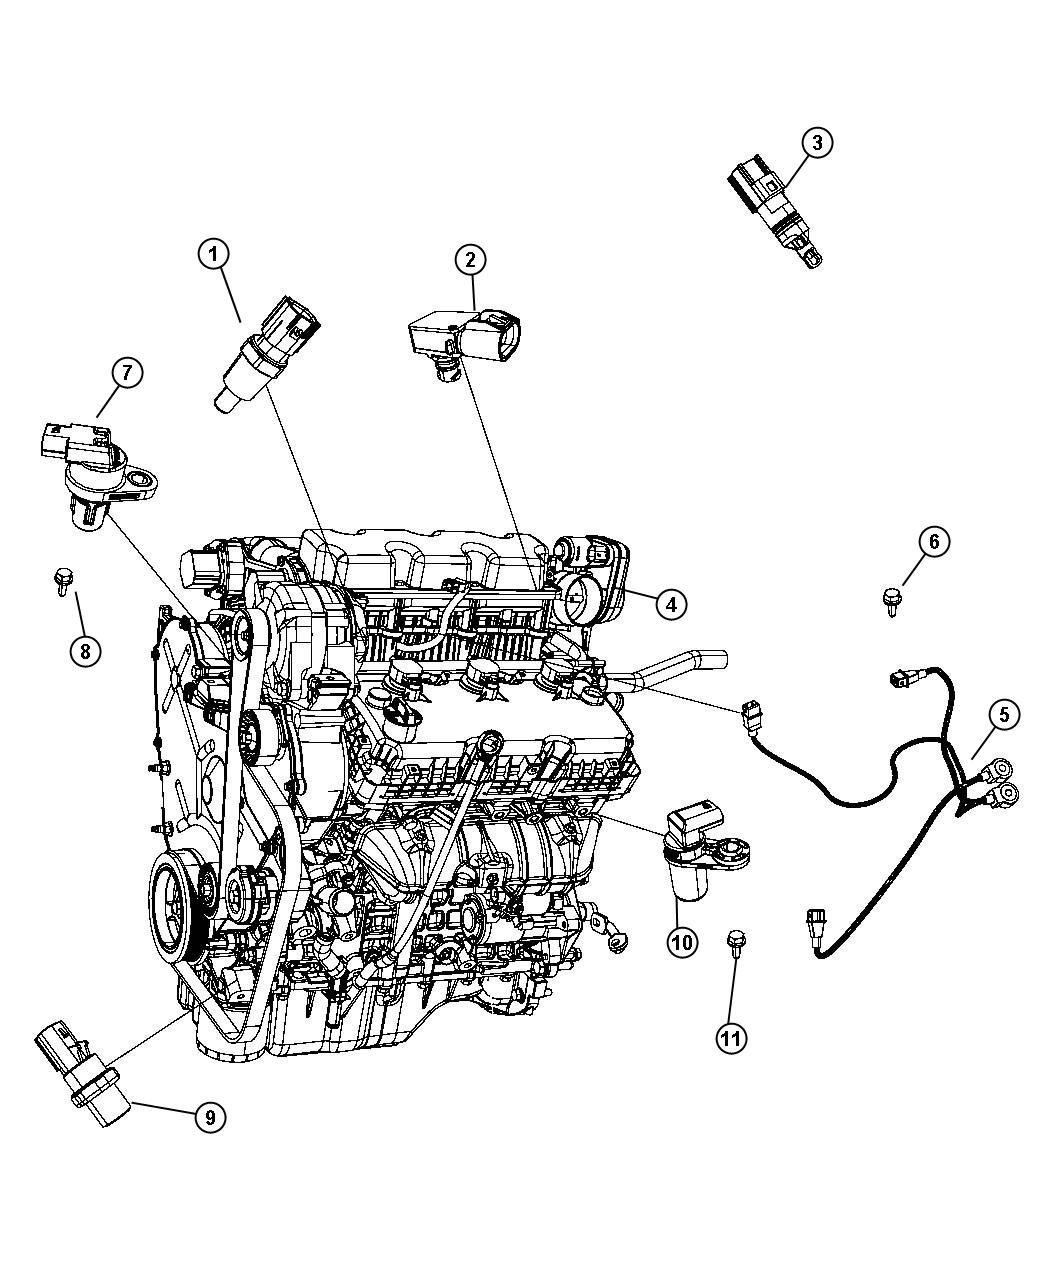 Dodge avenger thermostat location further 09 dodge journey 3 5l thermostat location as well 3j9qo heater